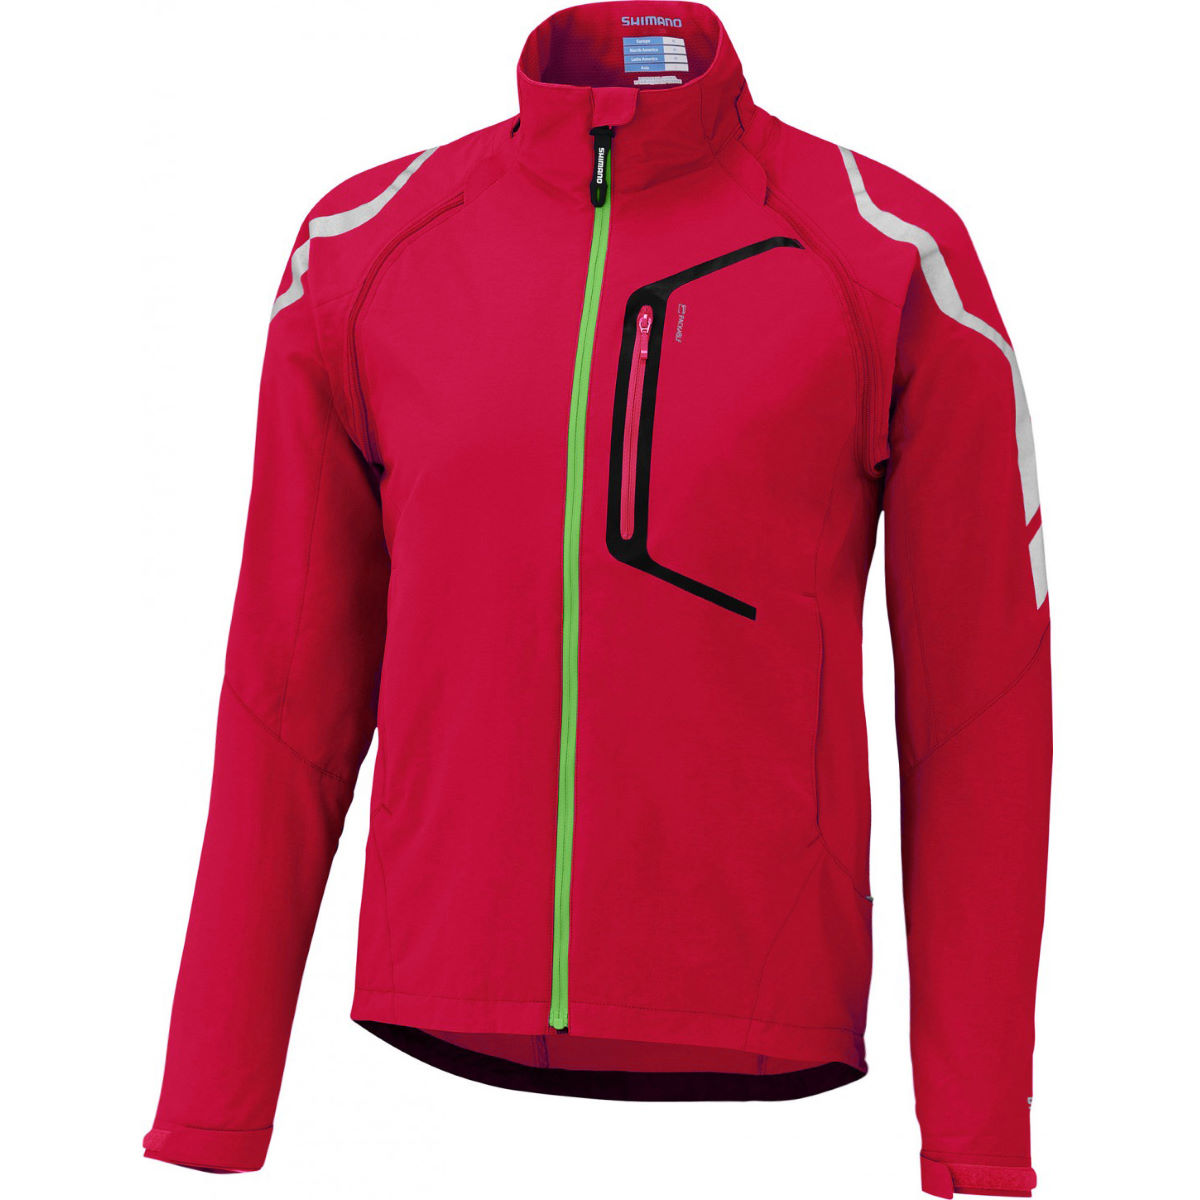 Veste Shimano Hybrid - Medium Rouge Coupe-vents vélo